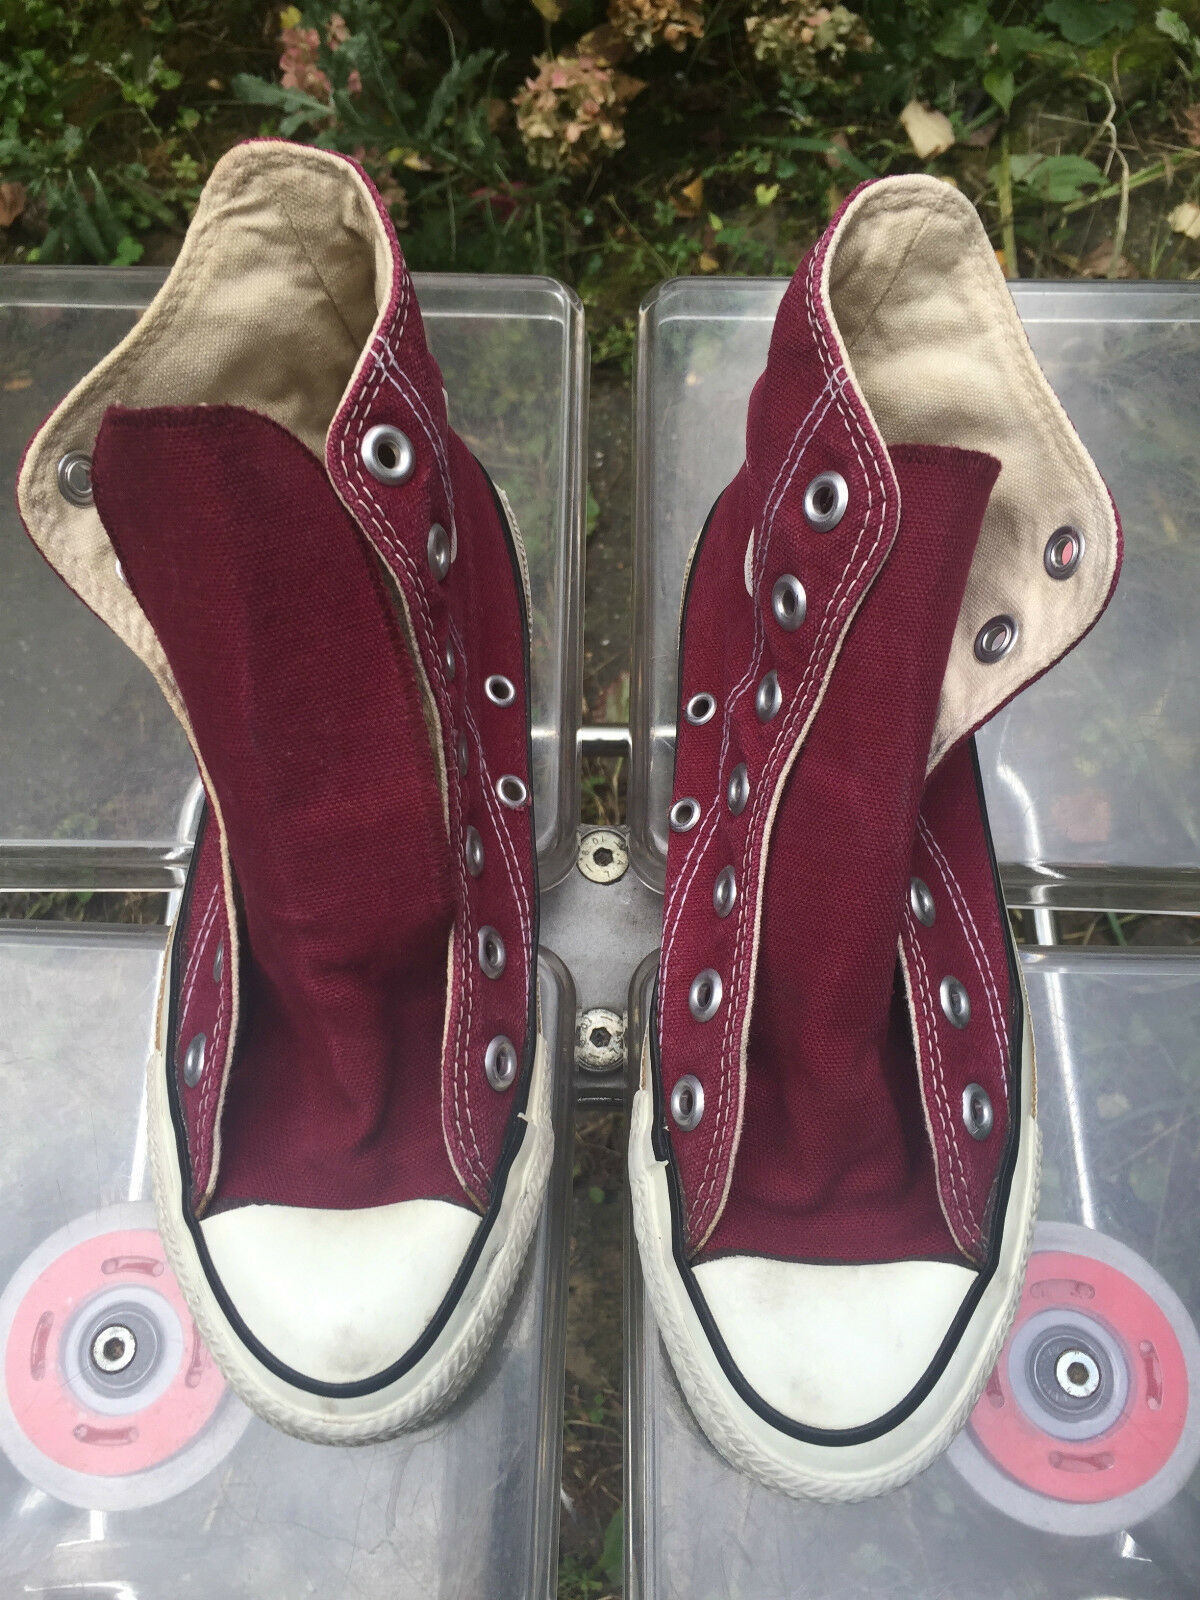 Converse All Star Vintage shoes